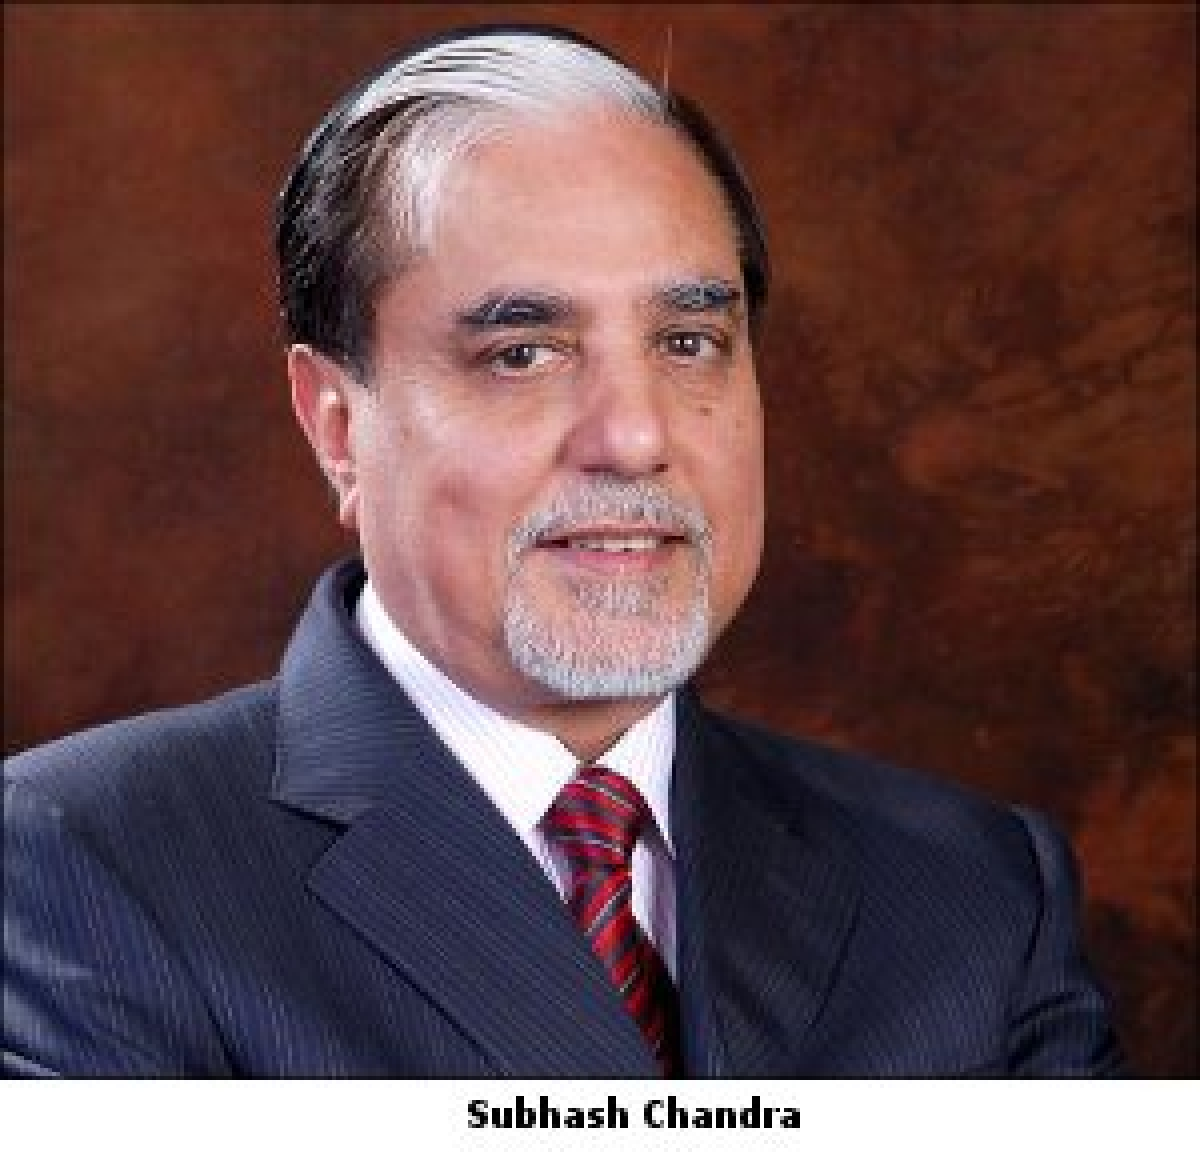 Subhash Chandra steps down as director and non-executive chairman of Zee Media